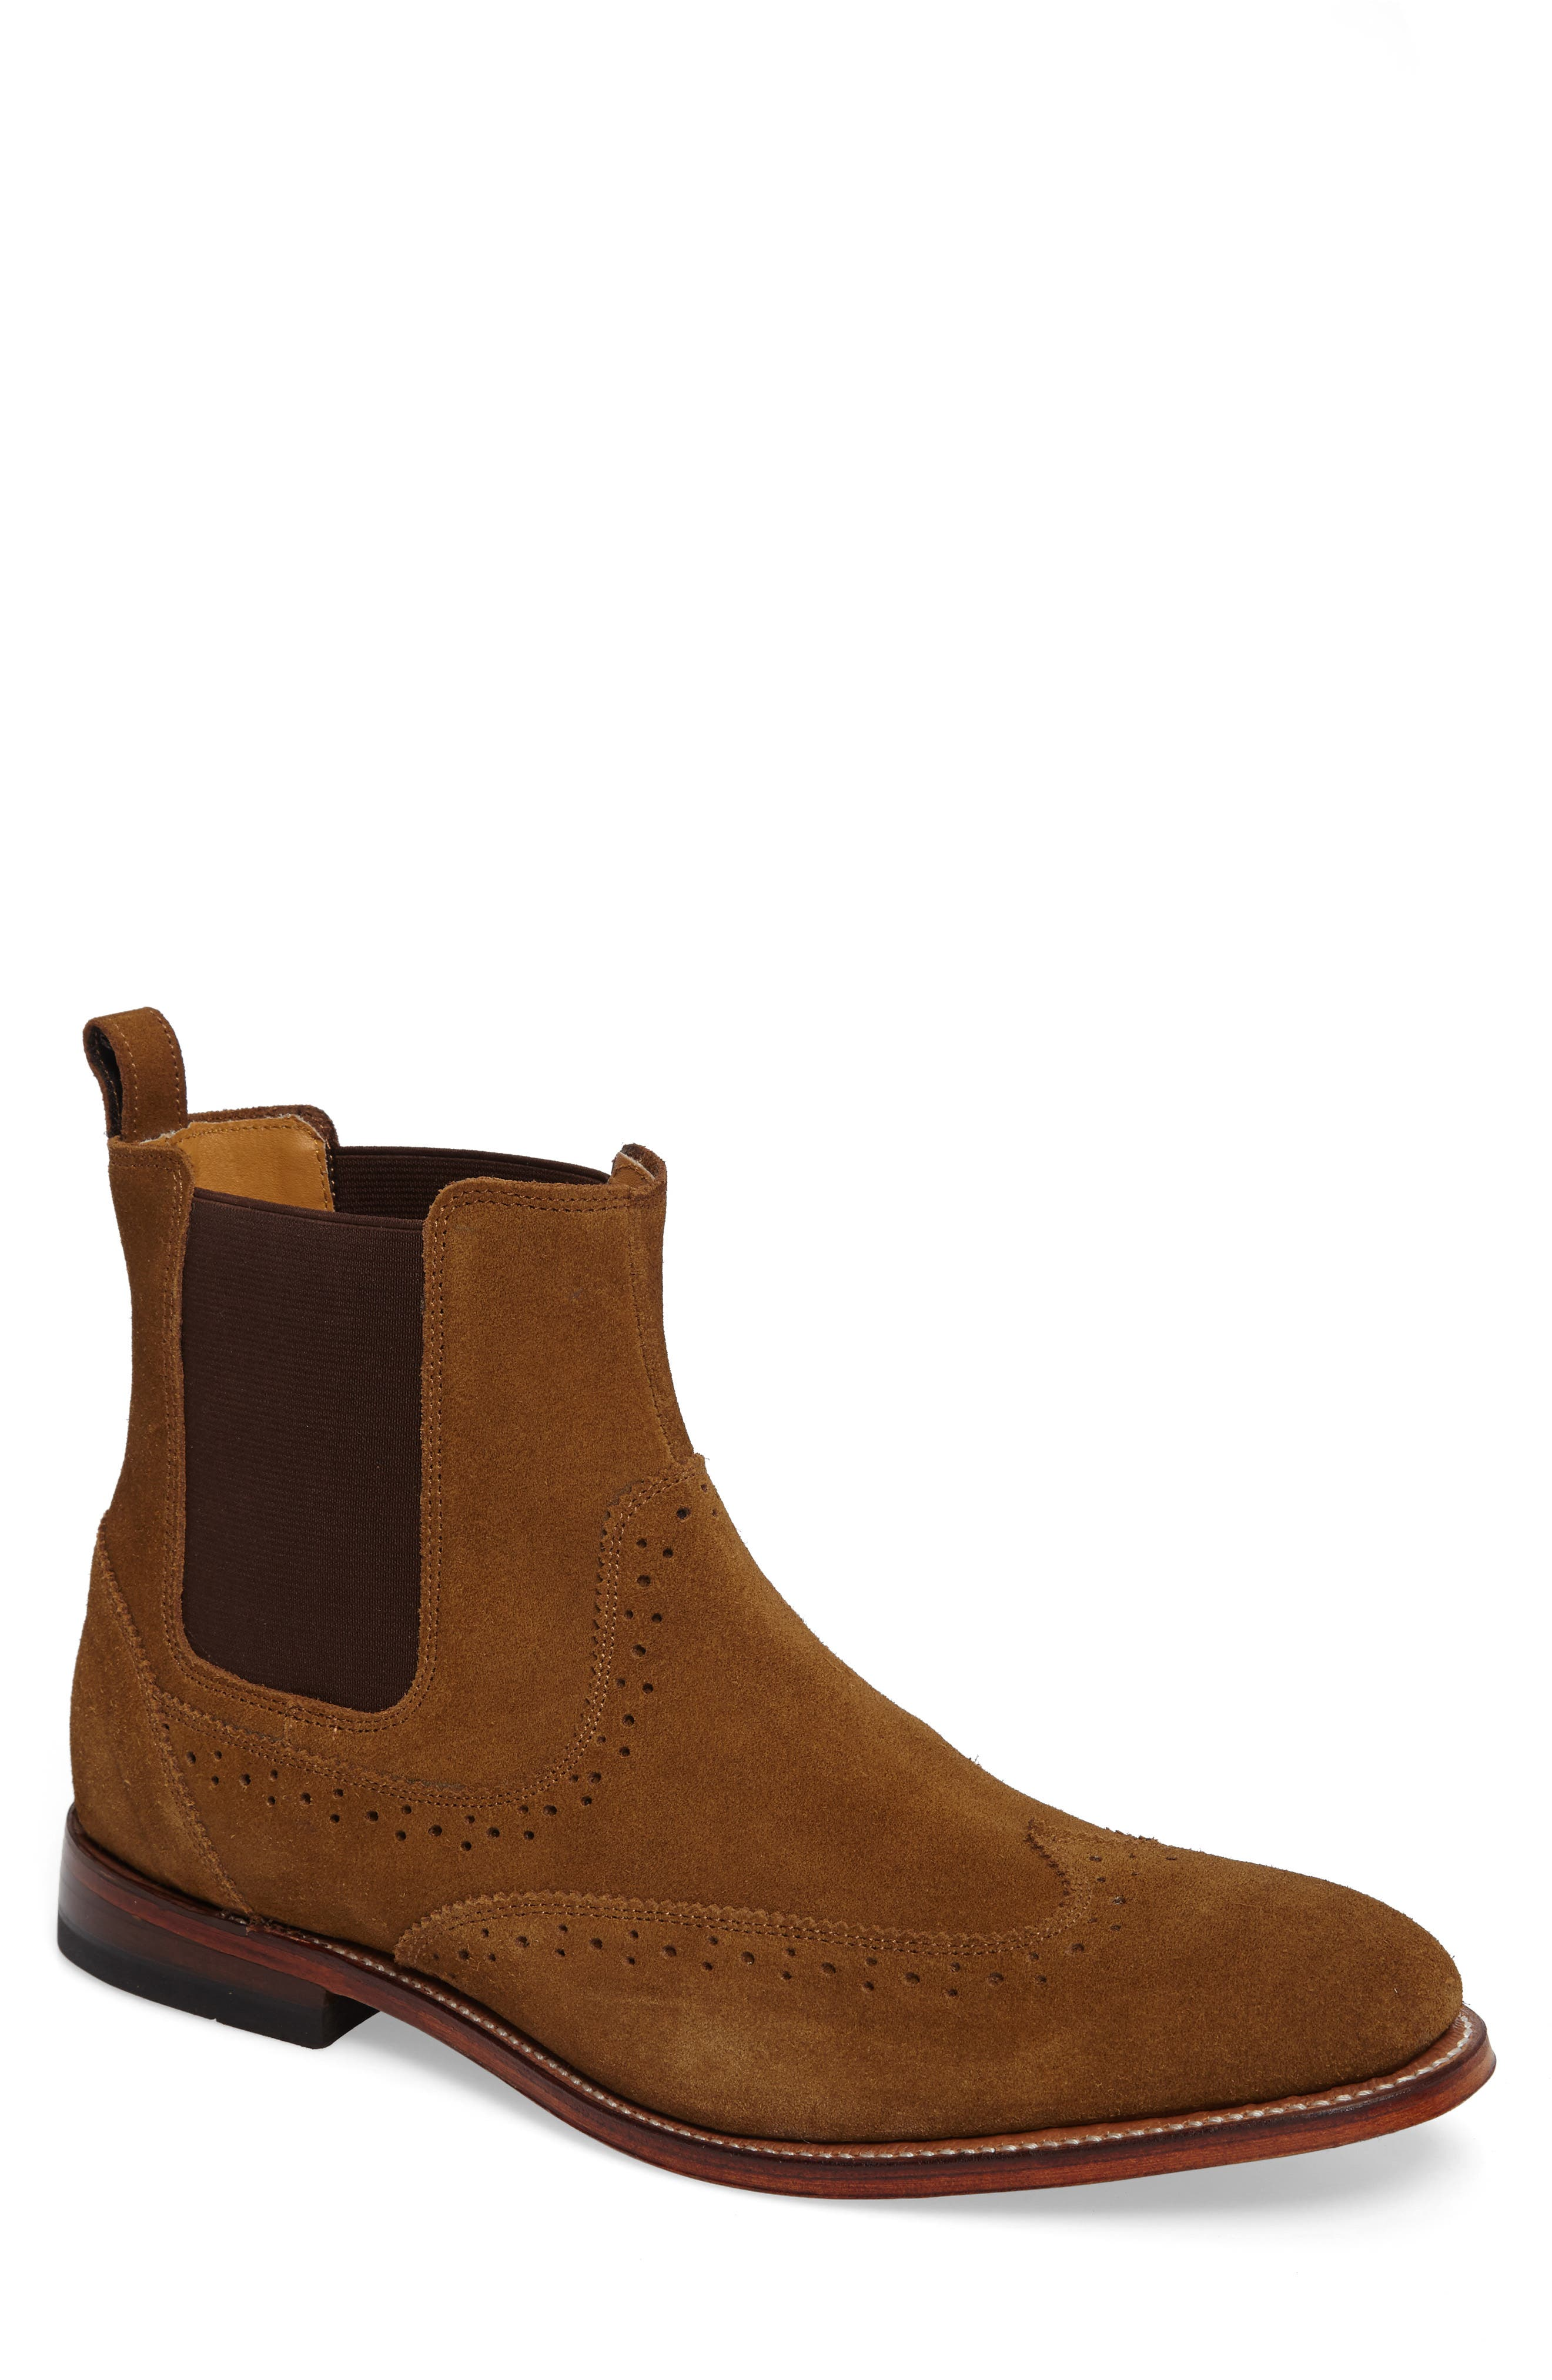 Stacy Adams Madison Ii Wingtip Chelsea Boot, Brown